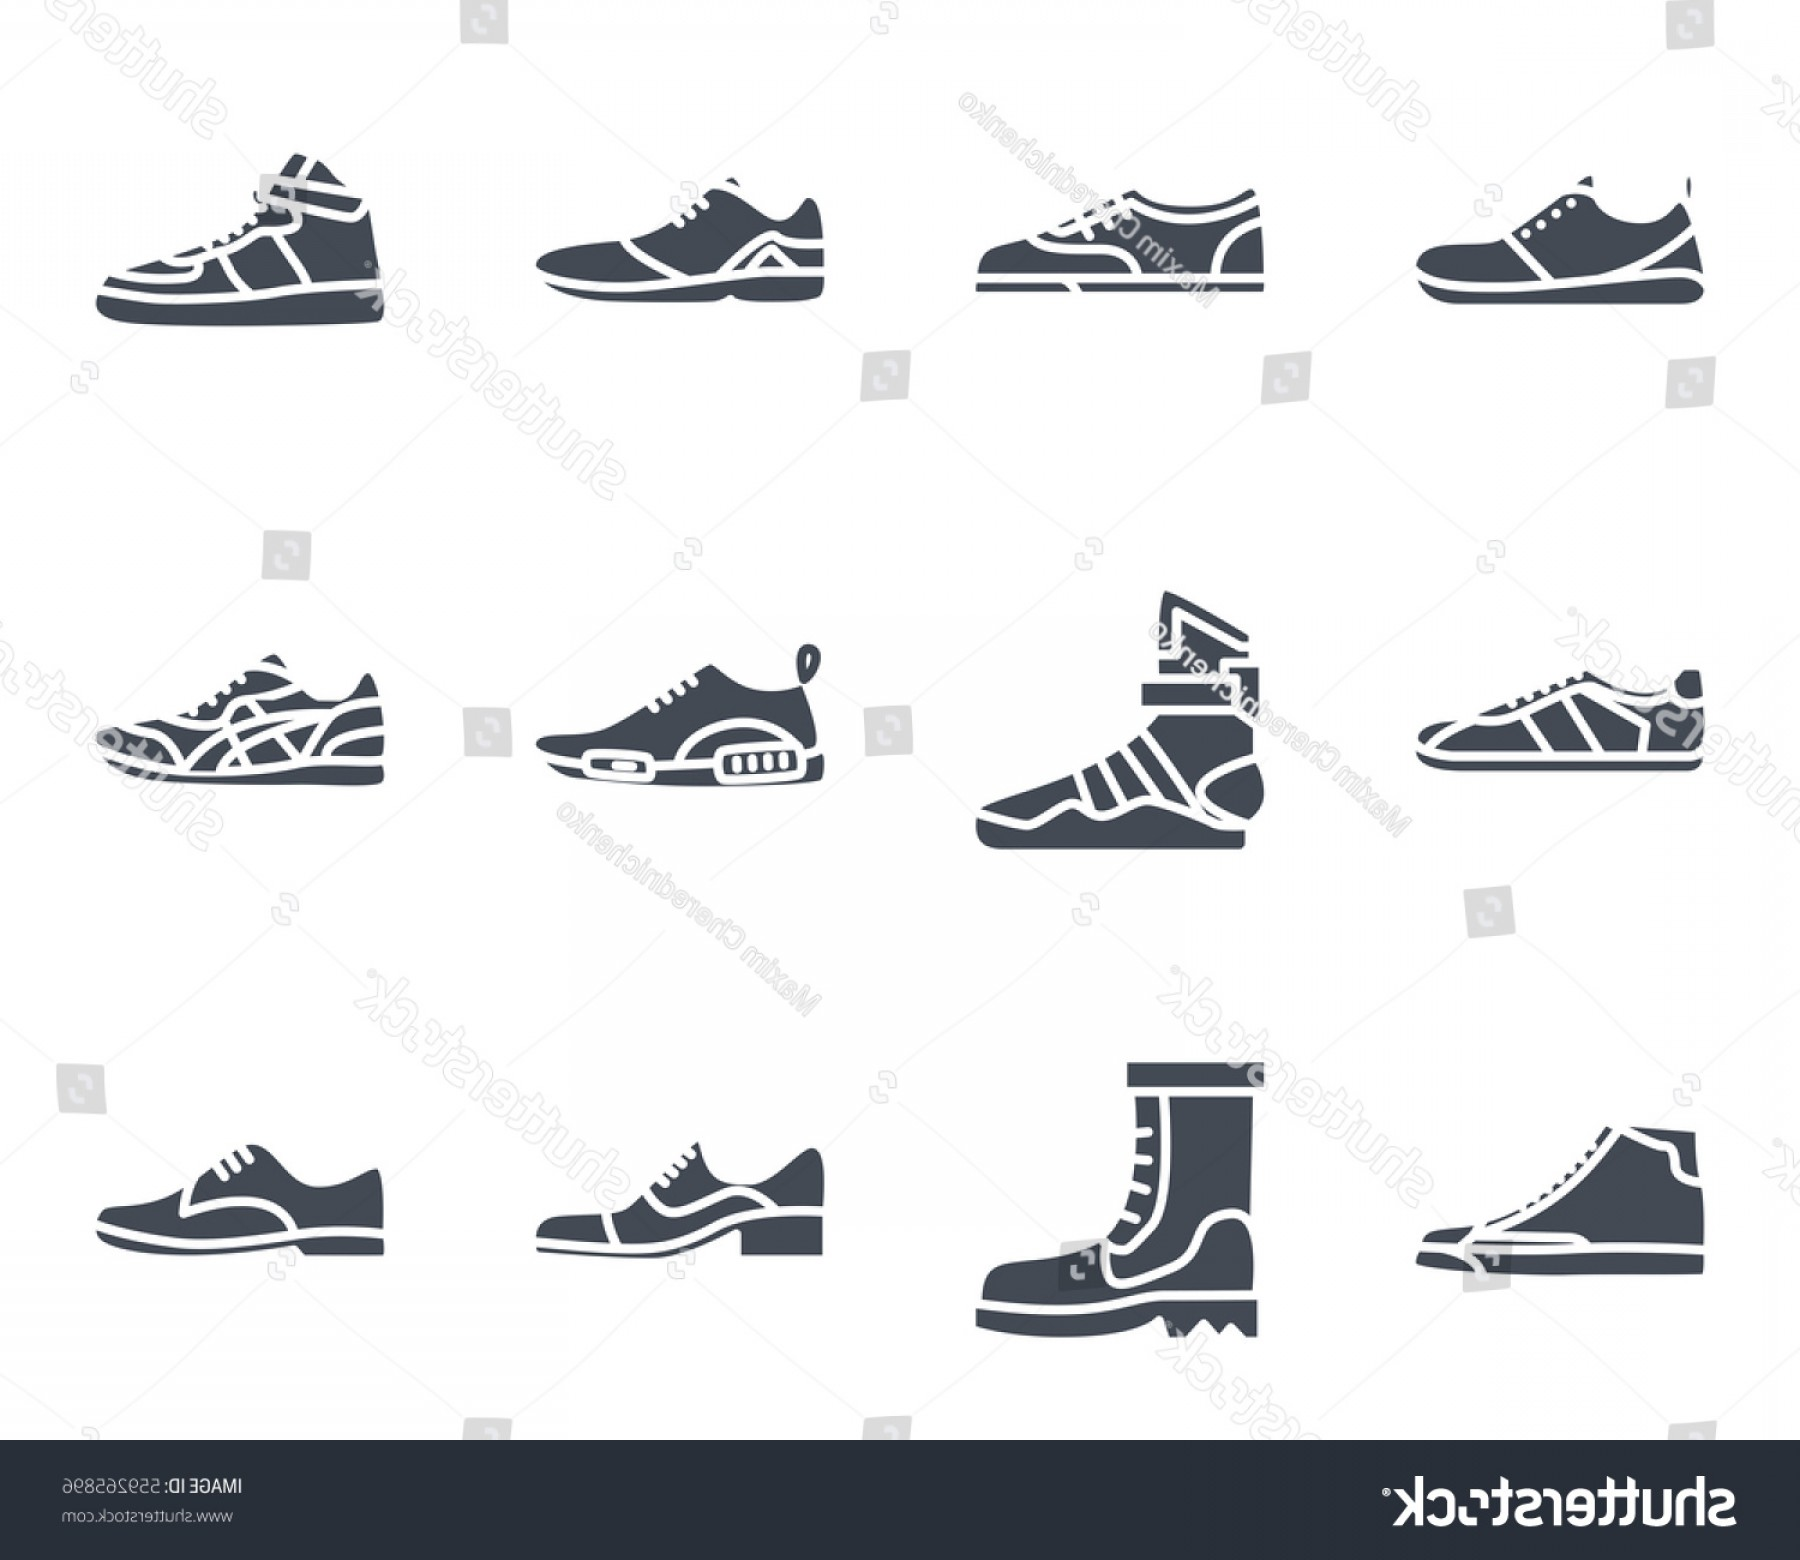 Sneaker Silhouette Vector: Men Shoes Sneakers Silhouette Icon